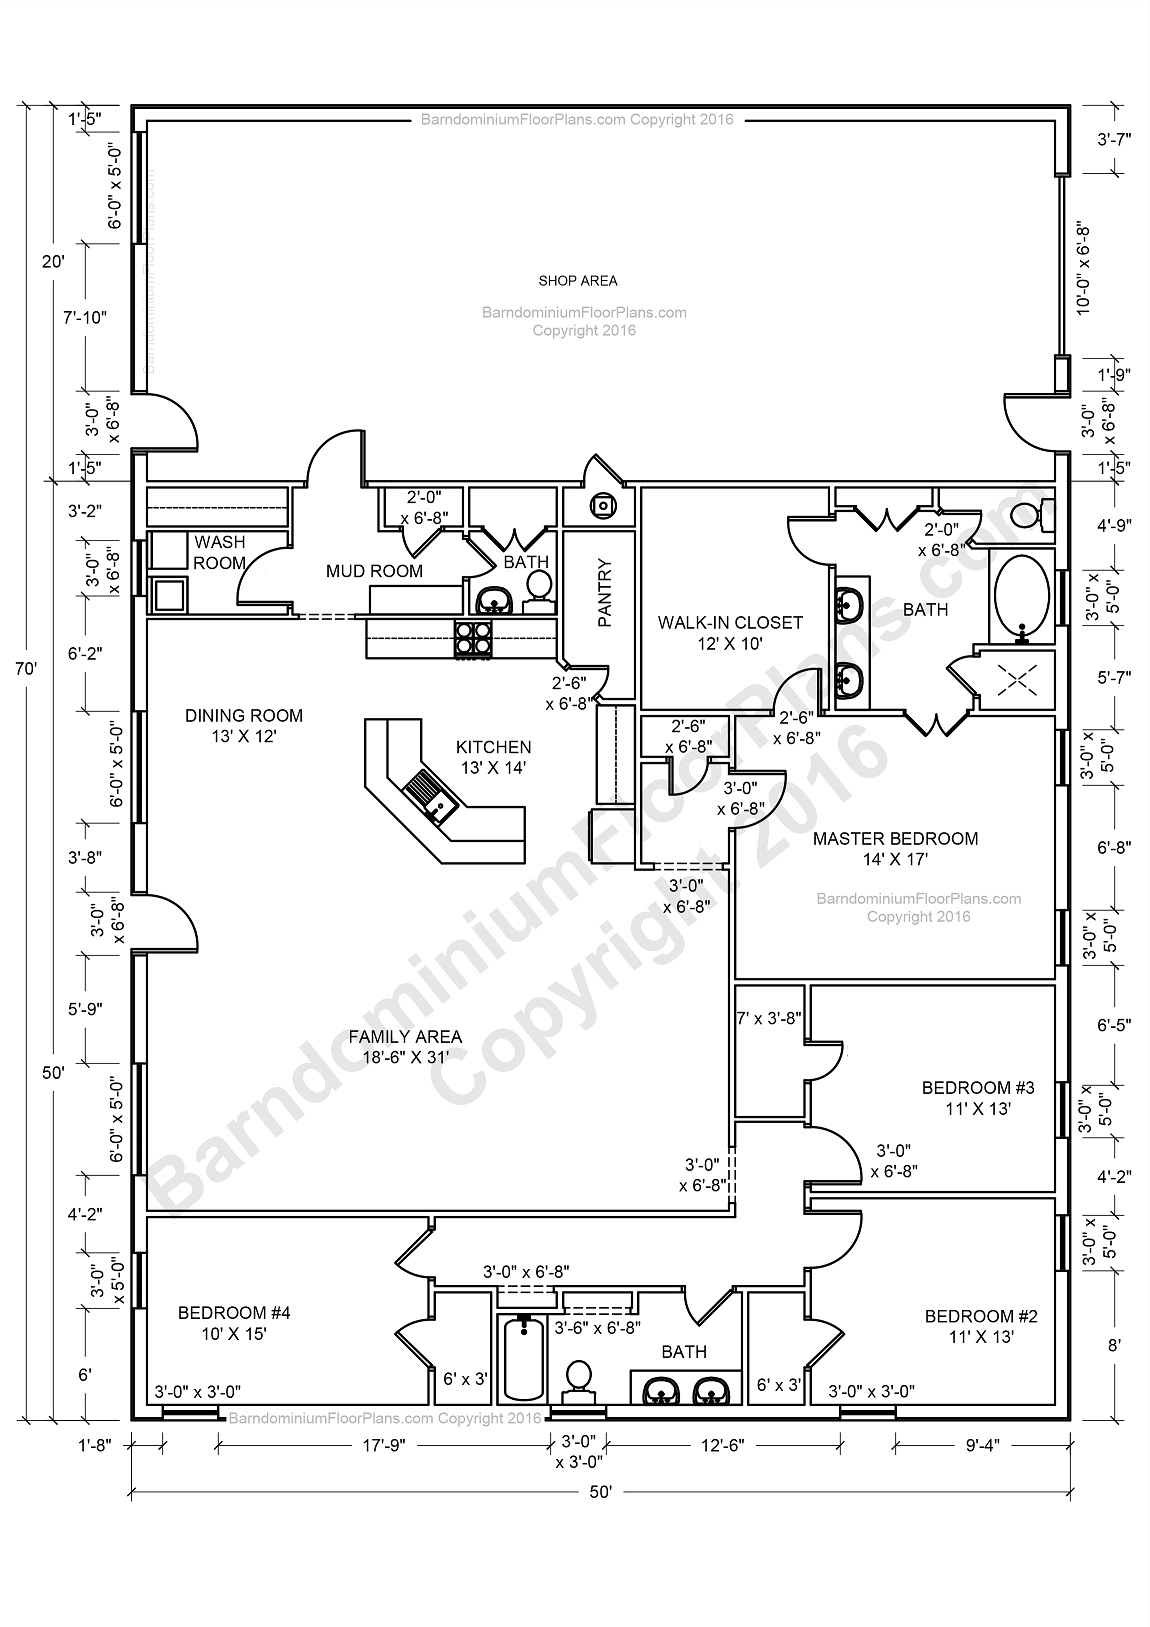 BEAST Metal Building: Barndominium Floor Plans And Design Ideas For YOU!